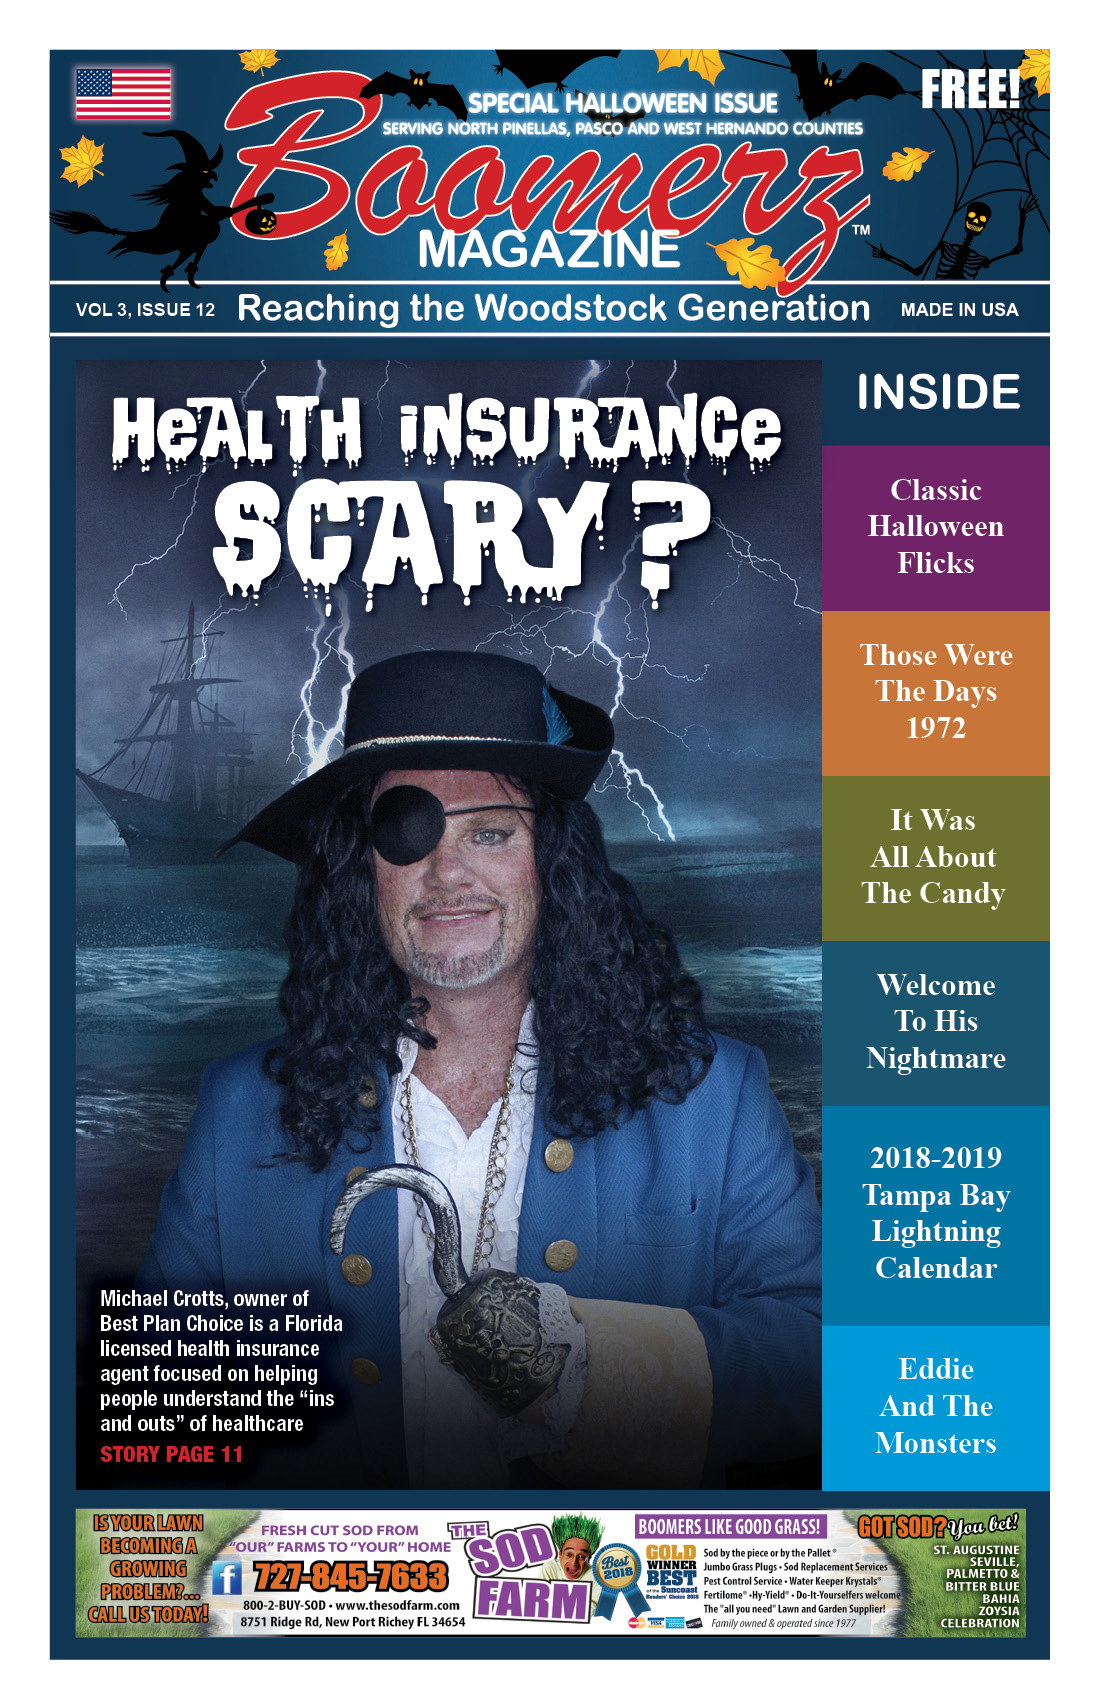 Boomer Magazine 2018 October Halloween Issue Cover Page